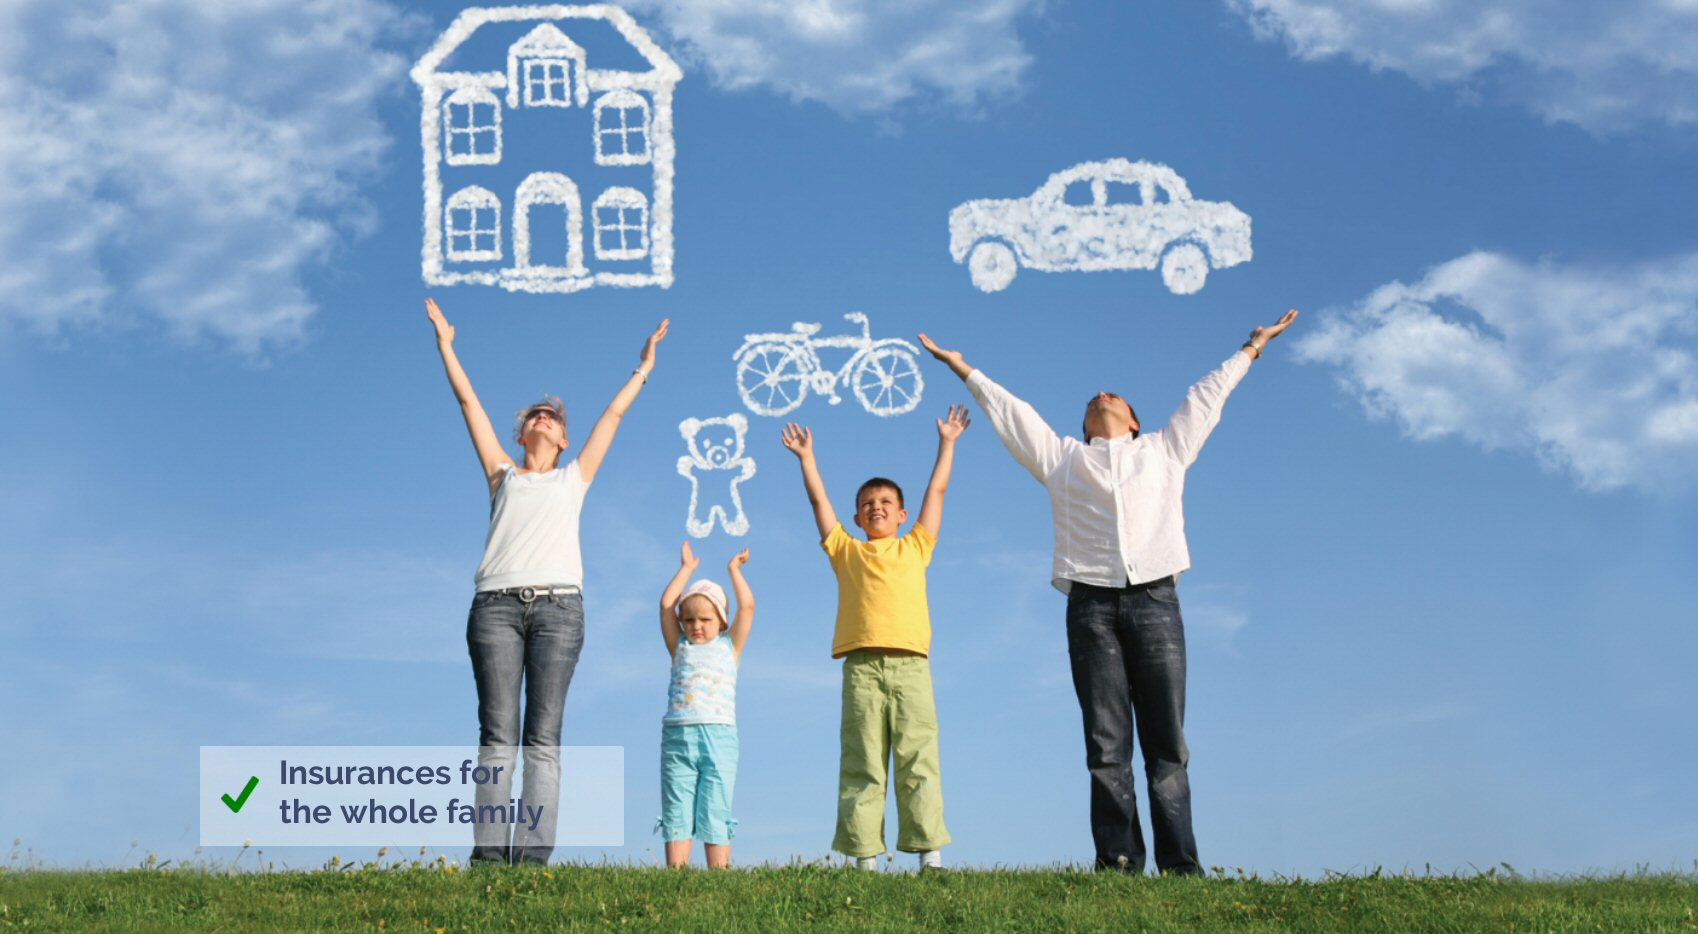 Insurances in Spain for the whole family